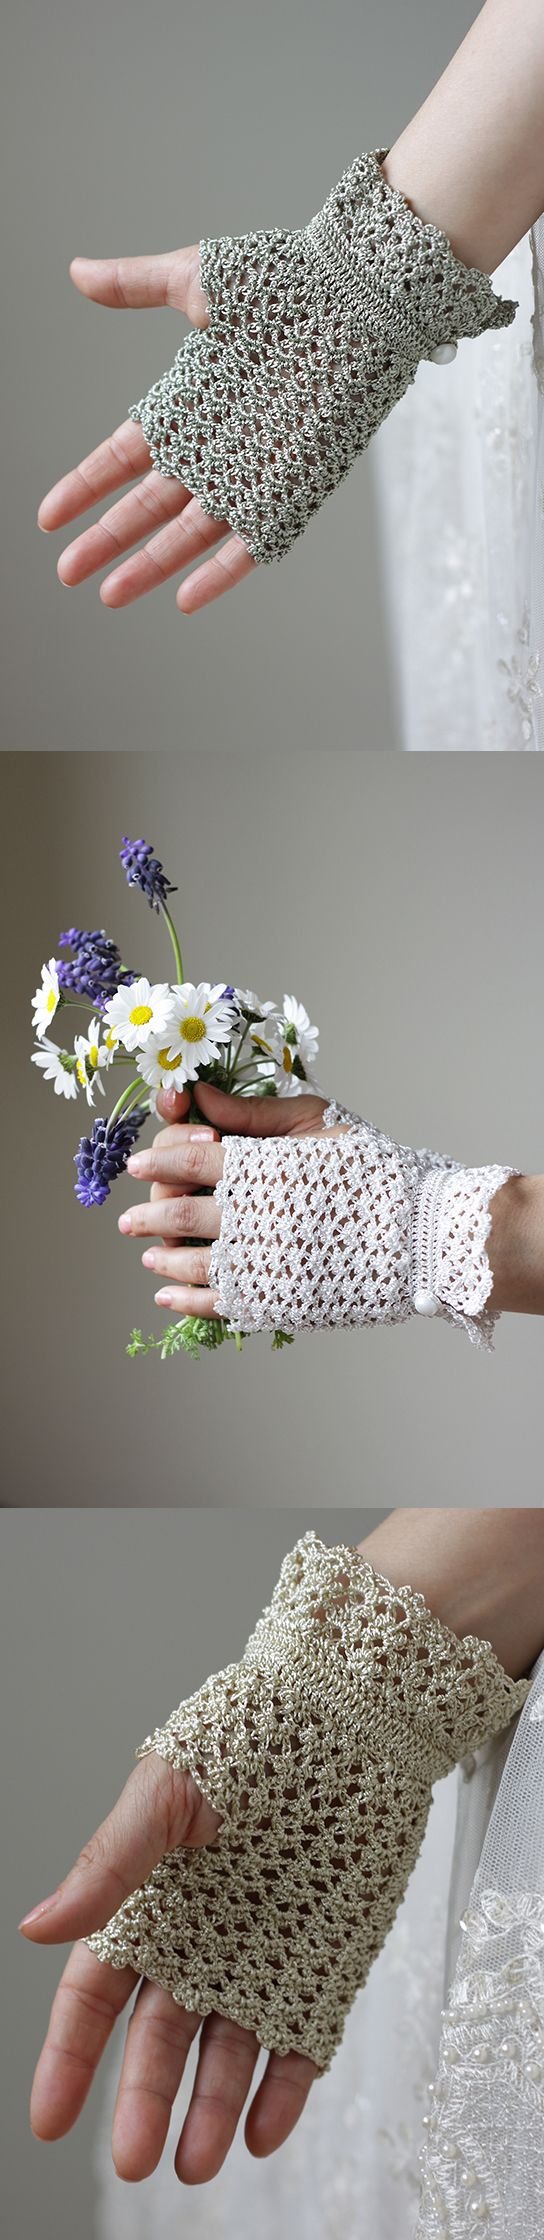 Ruffled knit fingerless gloves, Frilly gloves, Knit wrist warmers, Knit accessories #gloves